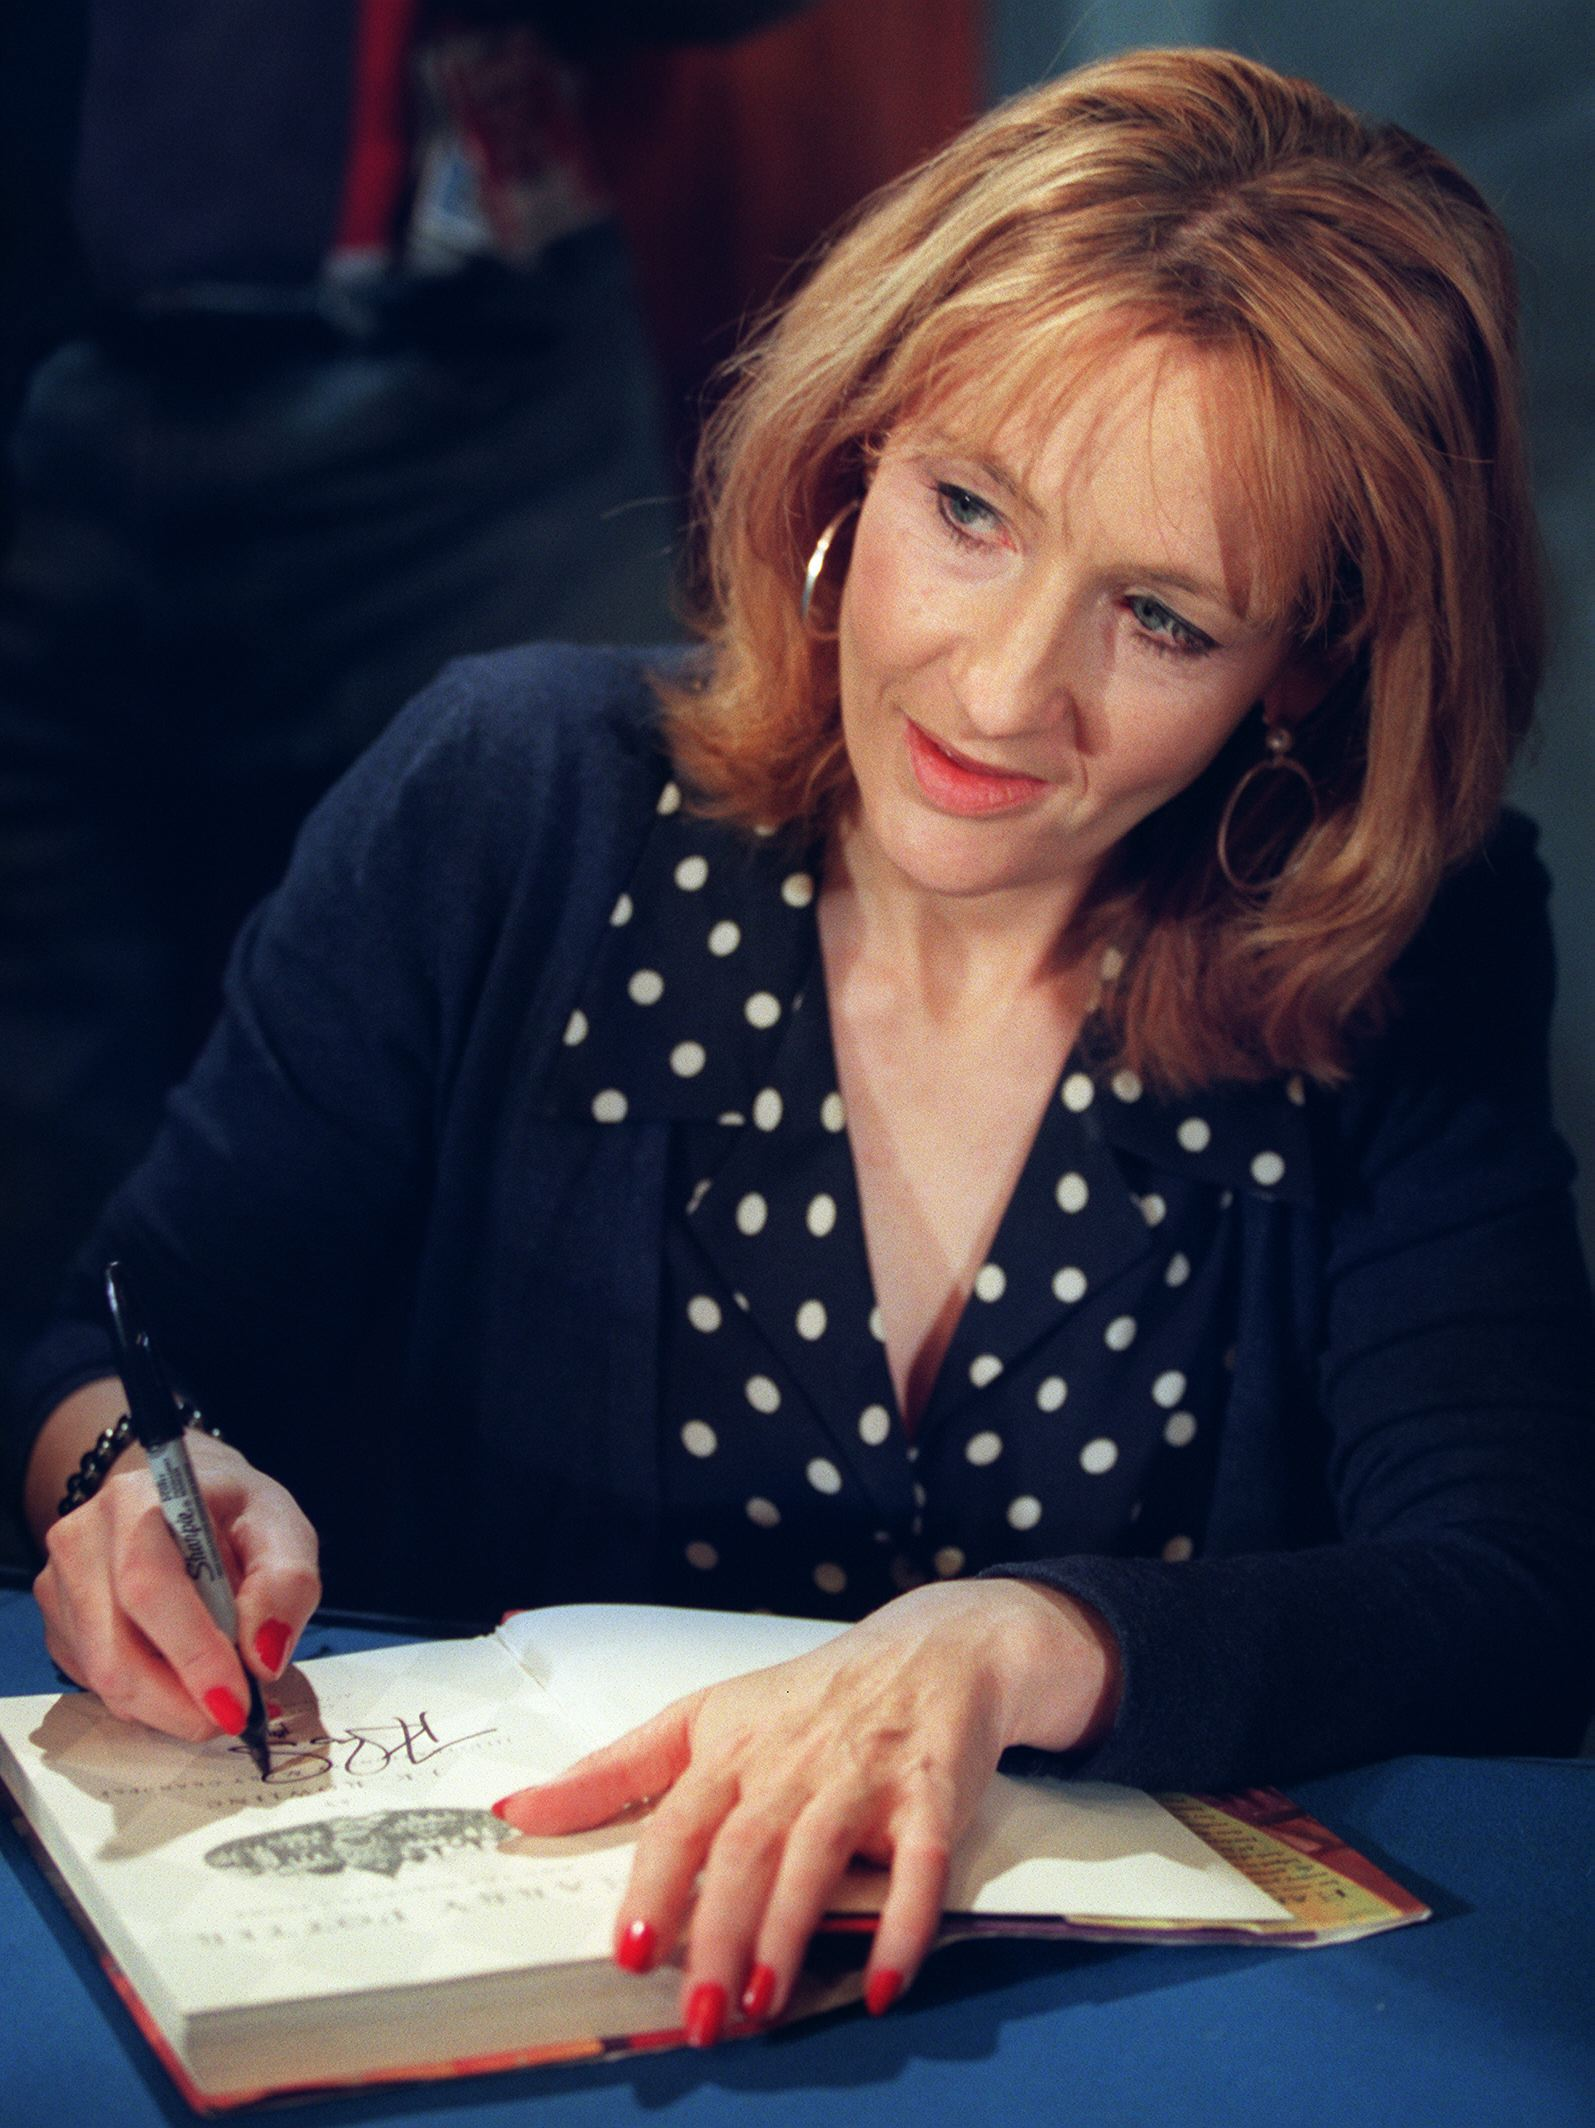 WASHINGTON, : J.K. Rowling, author of the best-selling Harry Potter children's books autographs one of her works during a book signing 20 October, 1999 in Washington, DC. Rowling's books, featuring Harry Potter a fictional orphan who attends a school for wizards, have become controversial in recent weeks as parents in a South Carolina school district seek to have the books banned for violent content. (Photo credit should read TIM SLOAN/AFP via Getty Images)